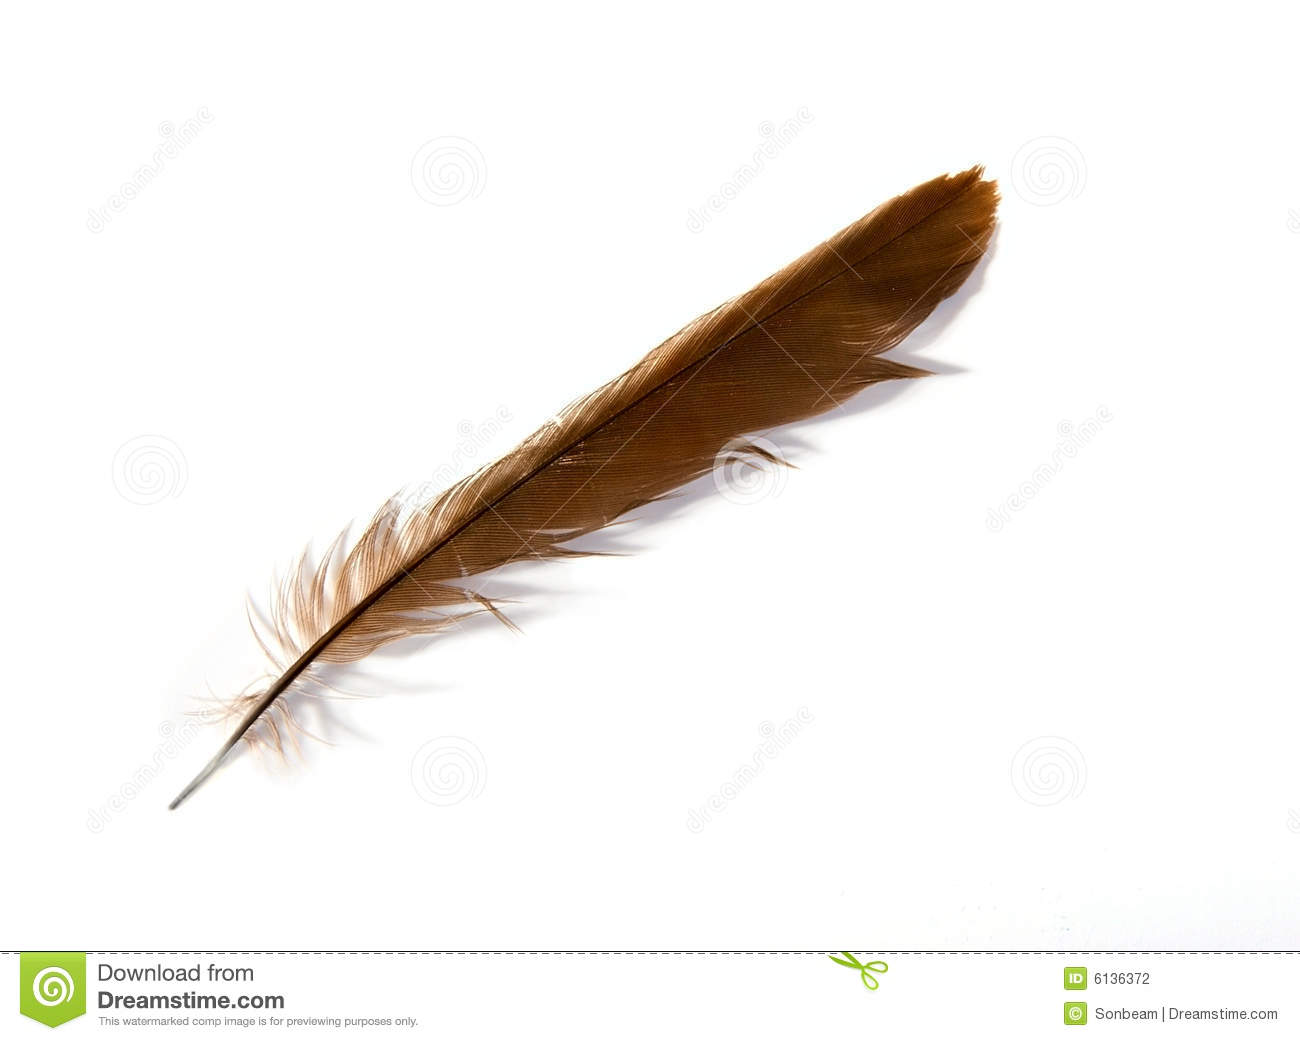 Duck Feather Stock Photography - Image: 6136372: dreamstime.com/stock-photography-duck-feather-image6136372